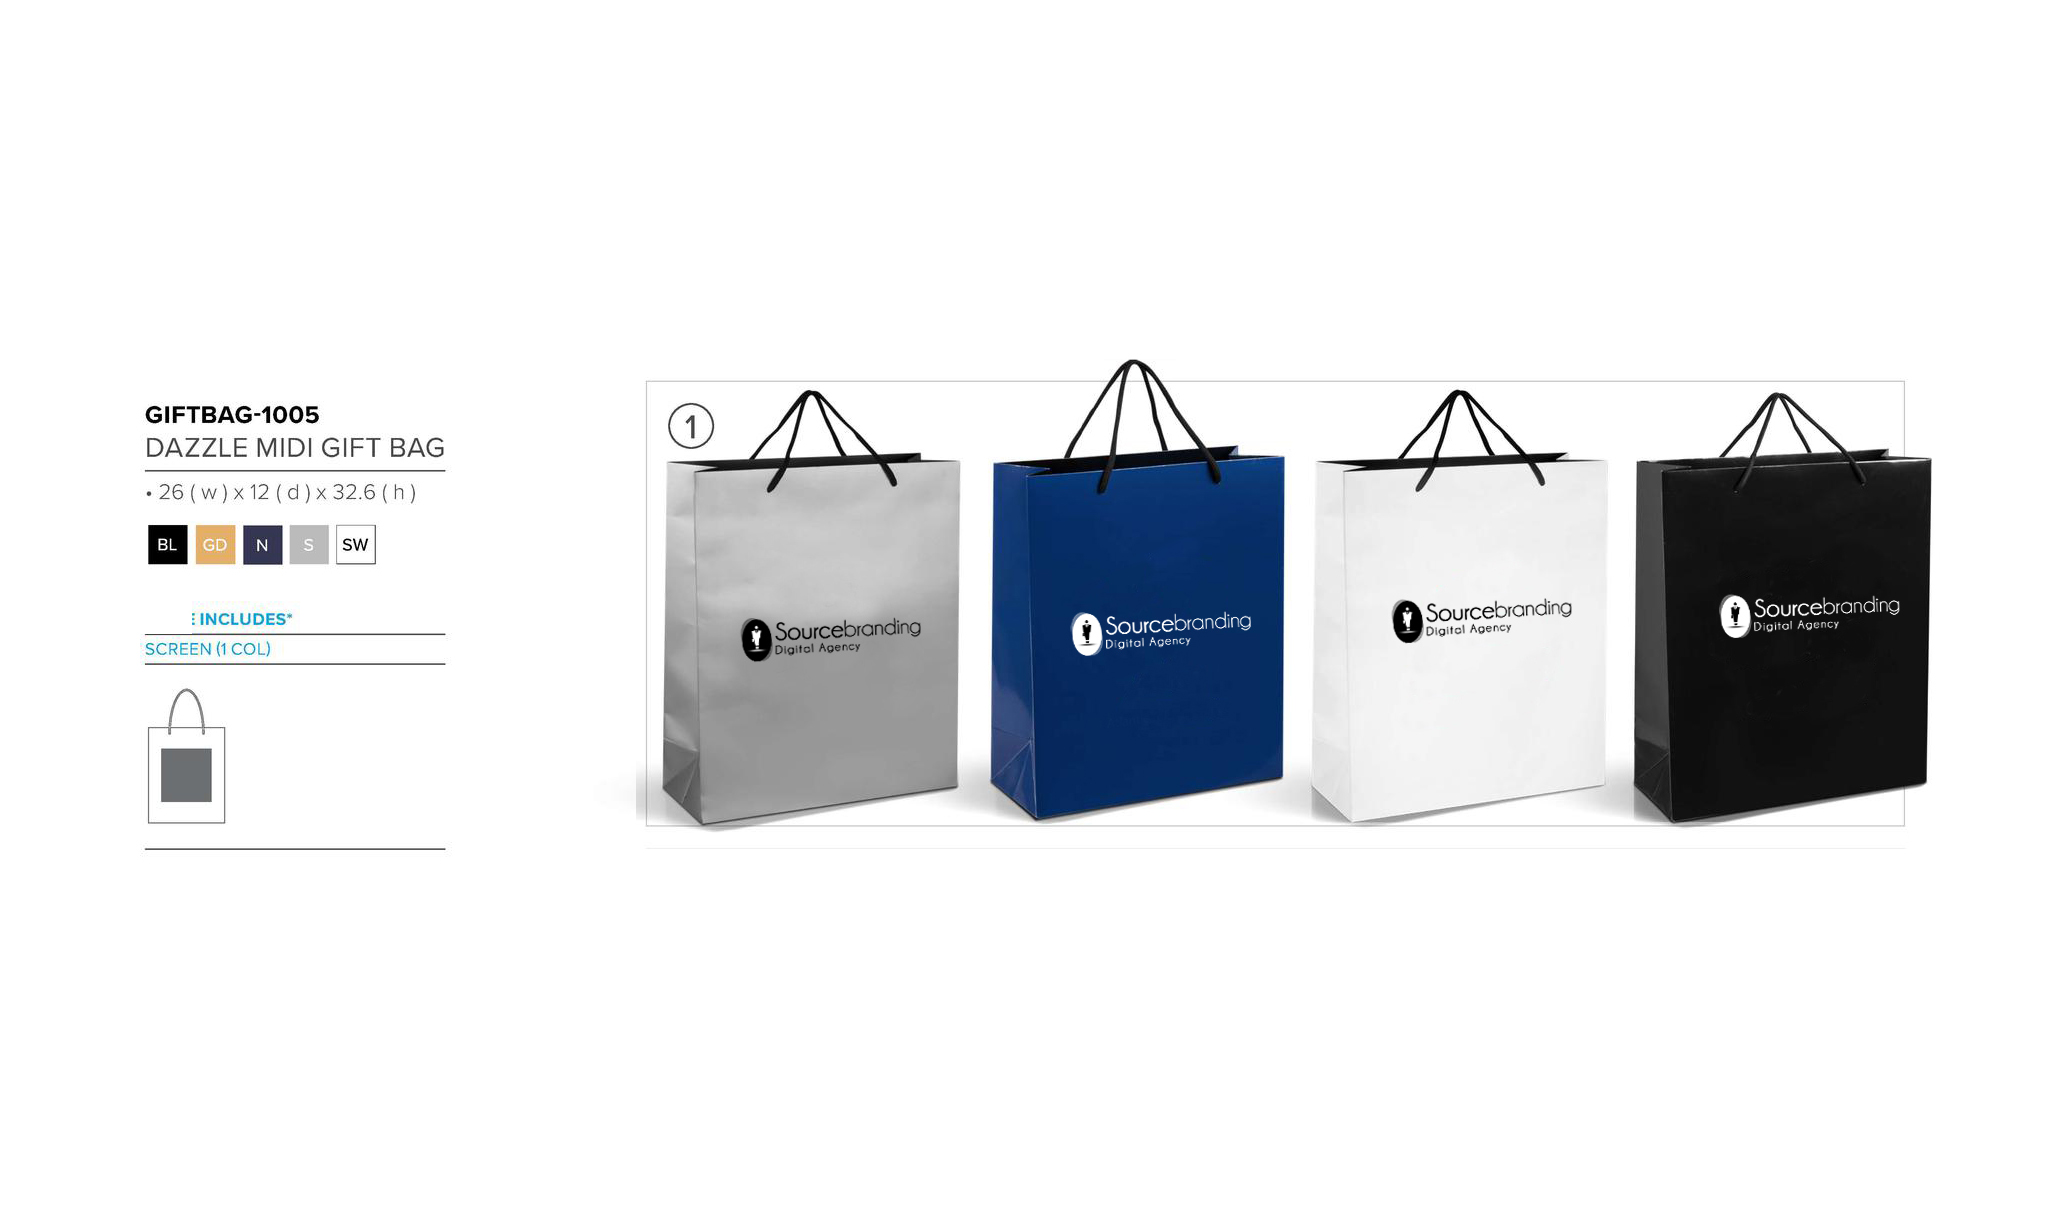 Sourcebranding gift bag